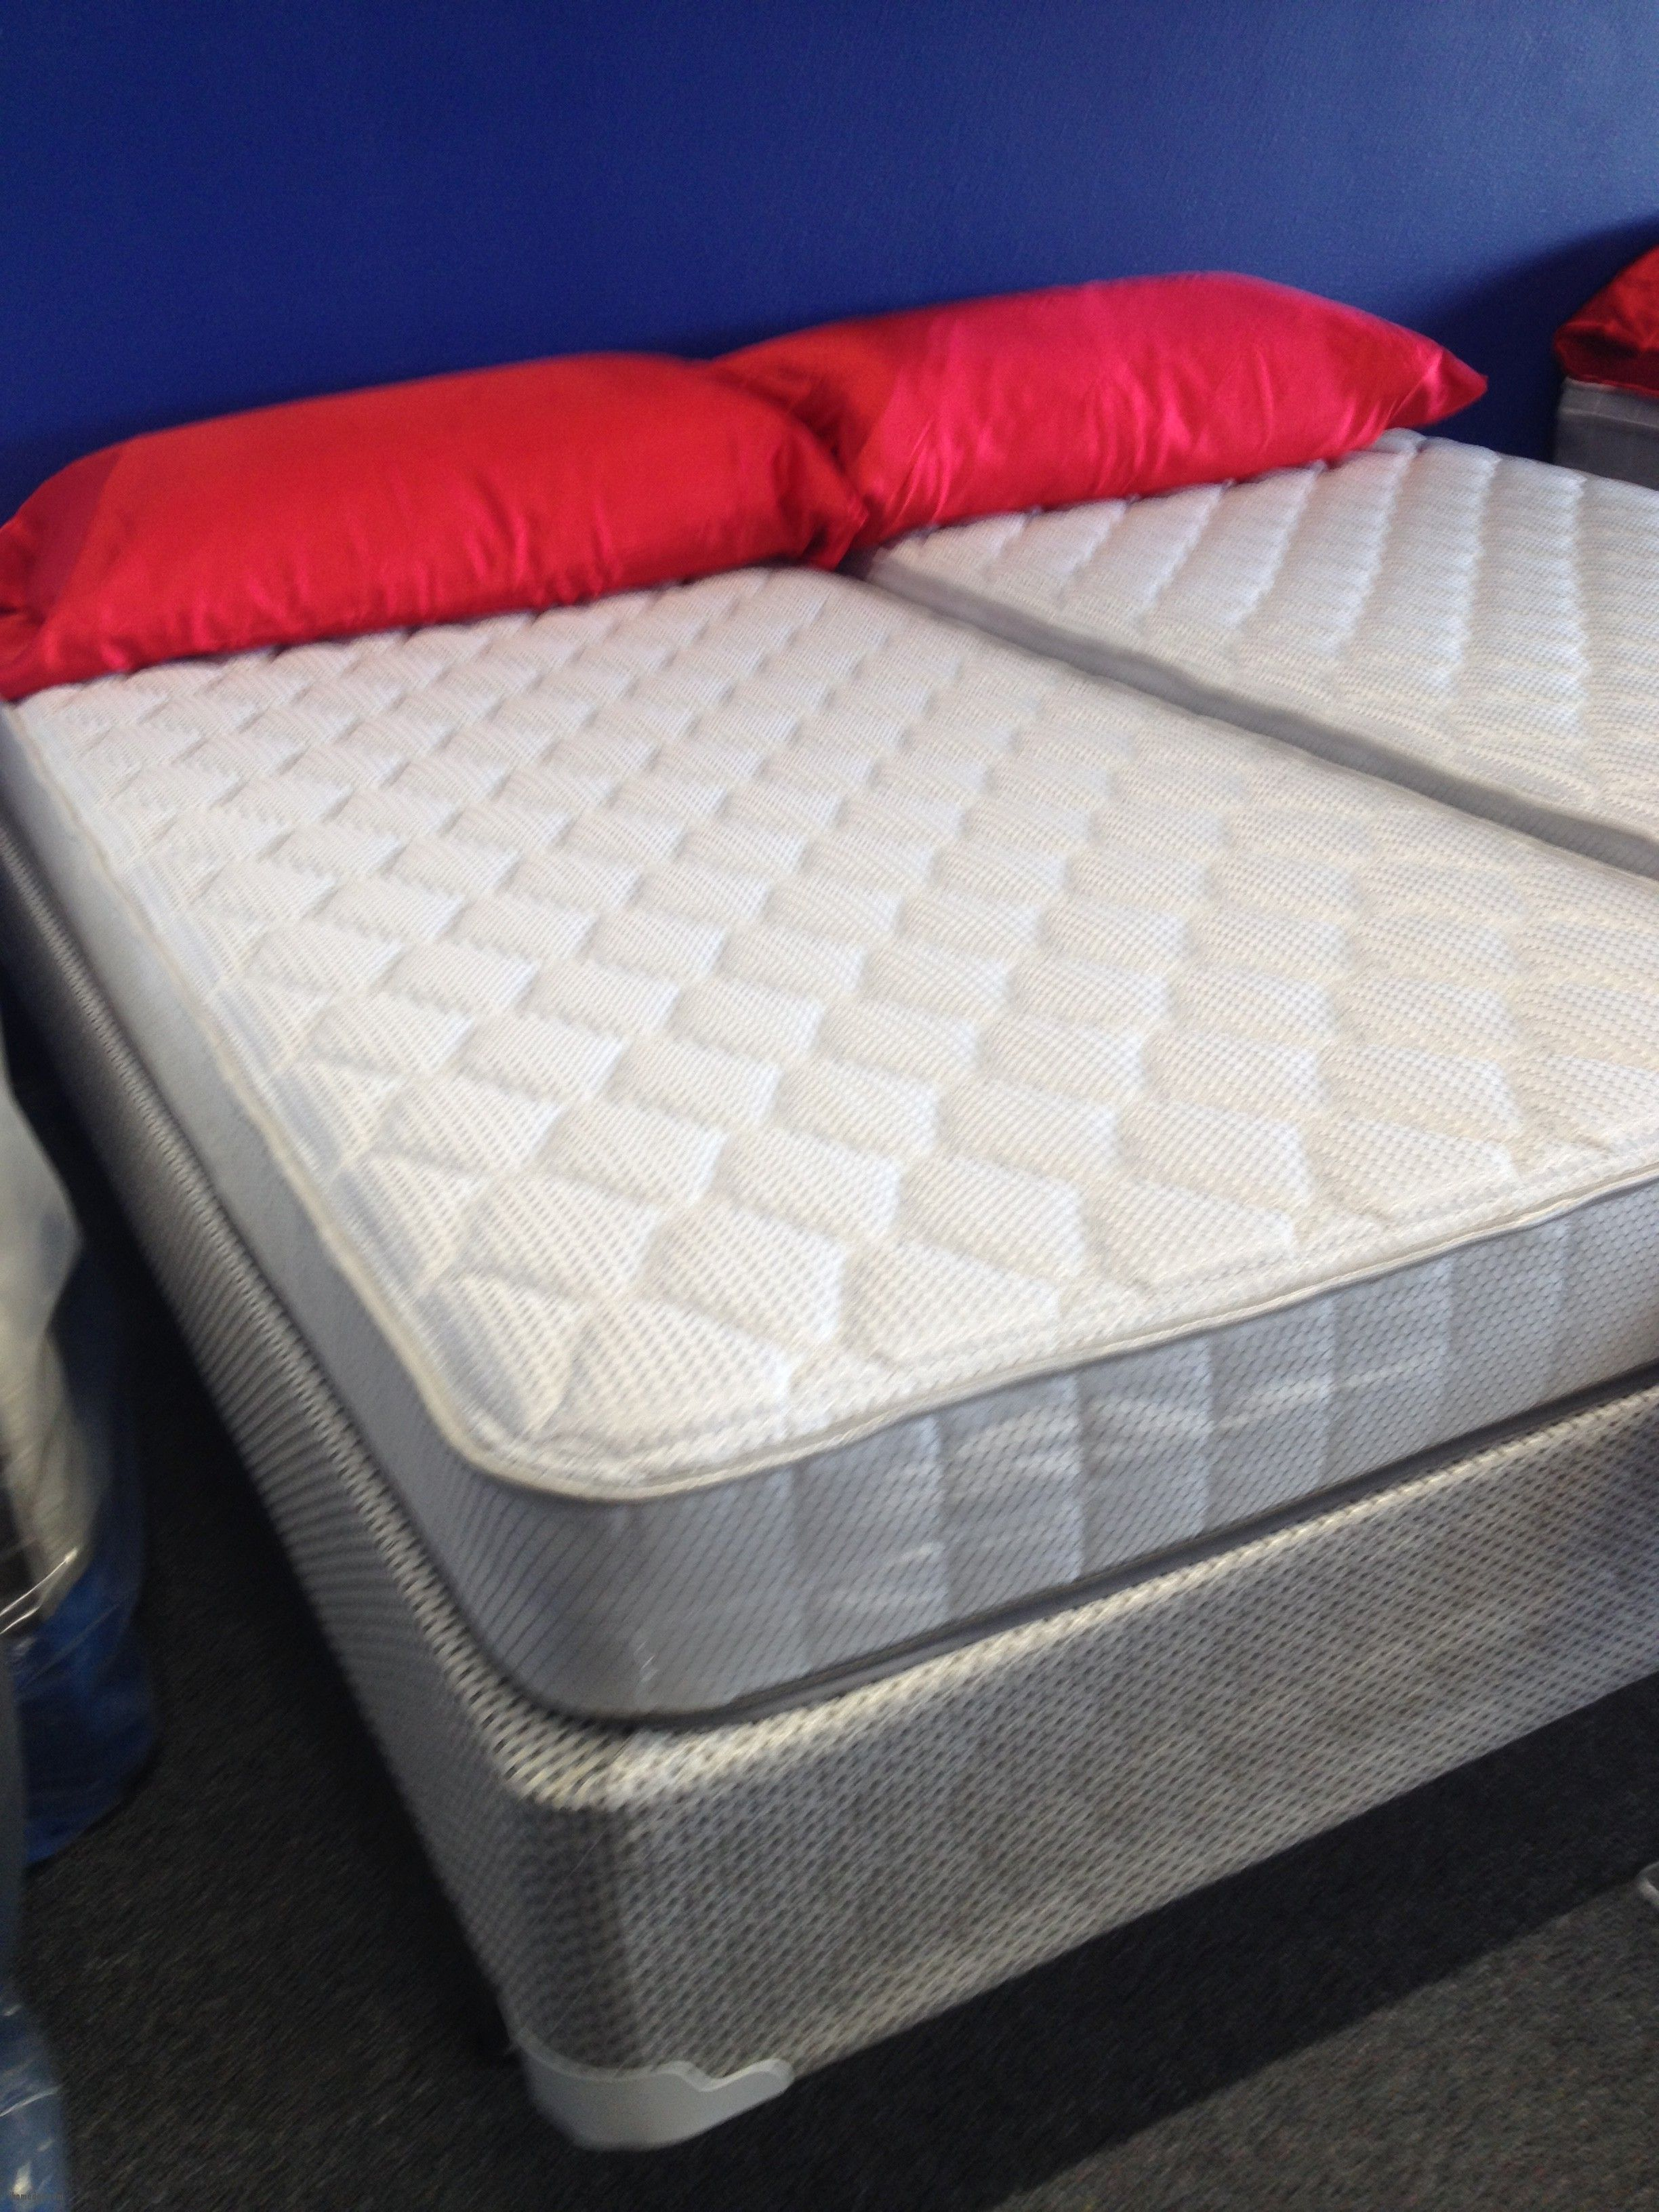 fine luxury mattresses mattress mart discount center http